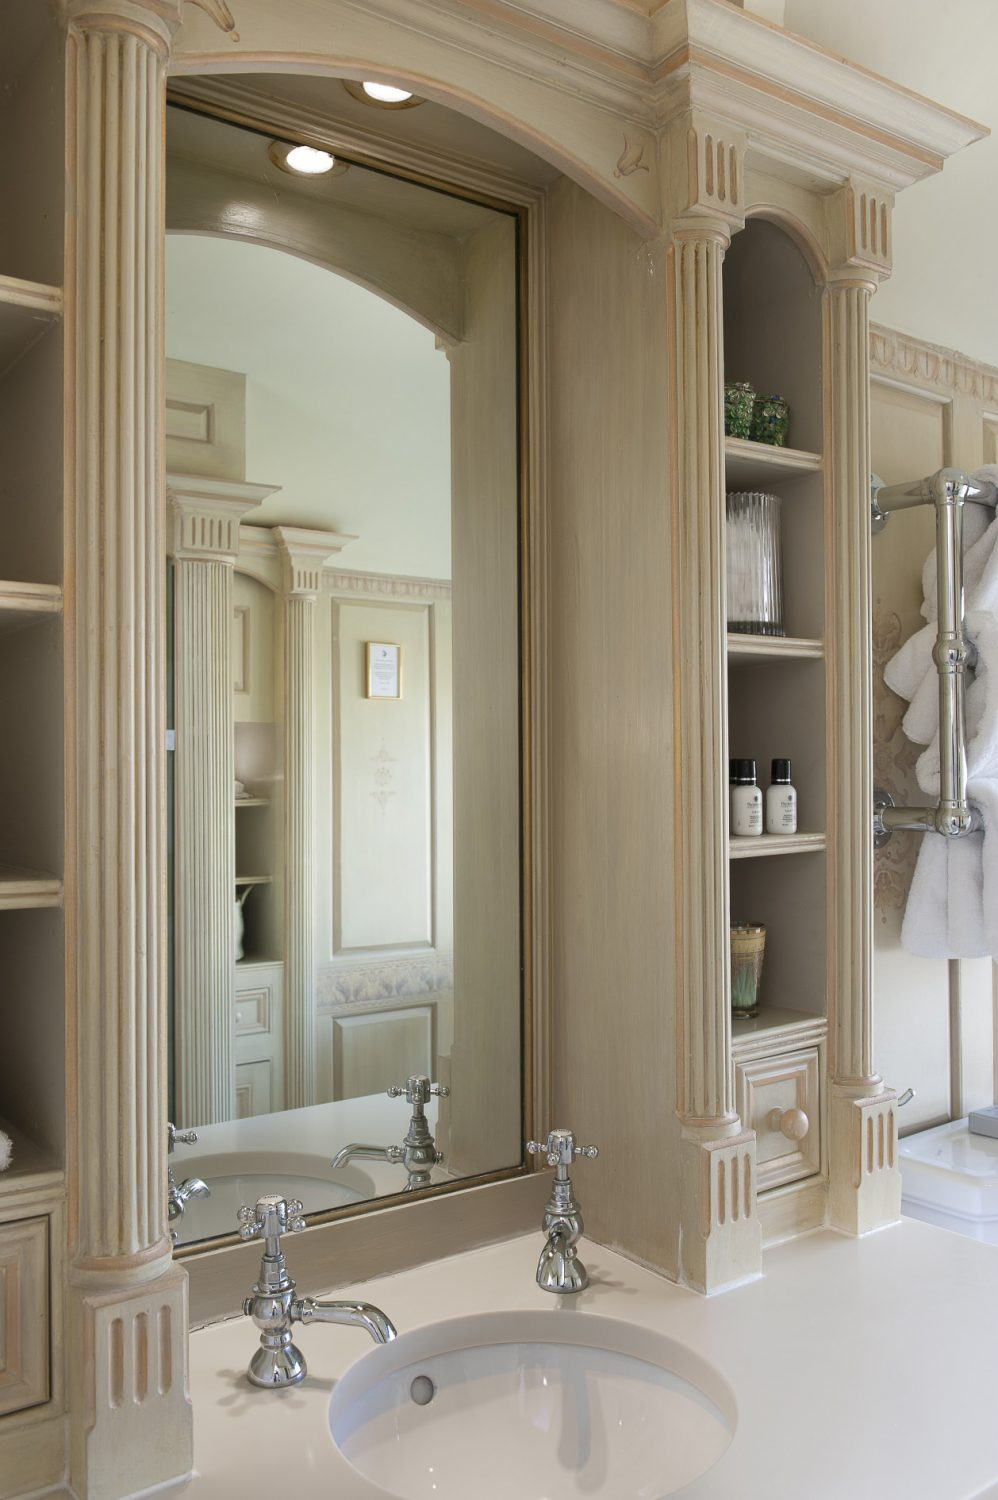 Sackville's en suite has been beautifully hand-painted by Nina, taking four months to complete.